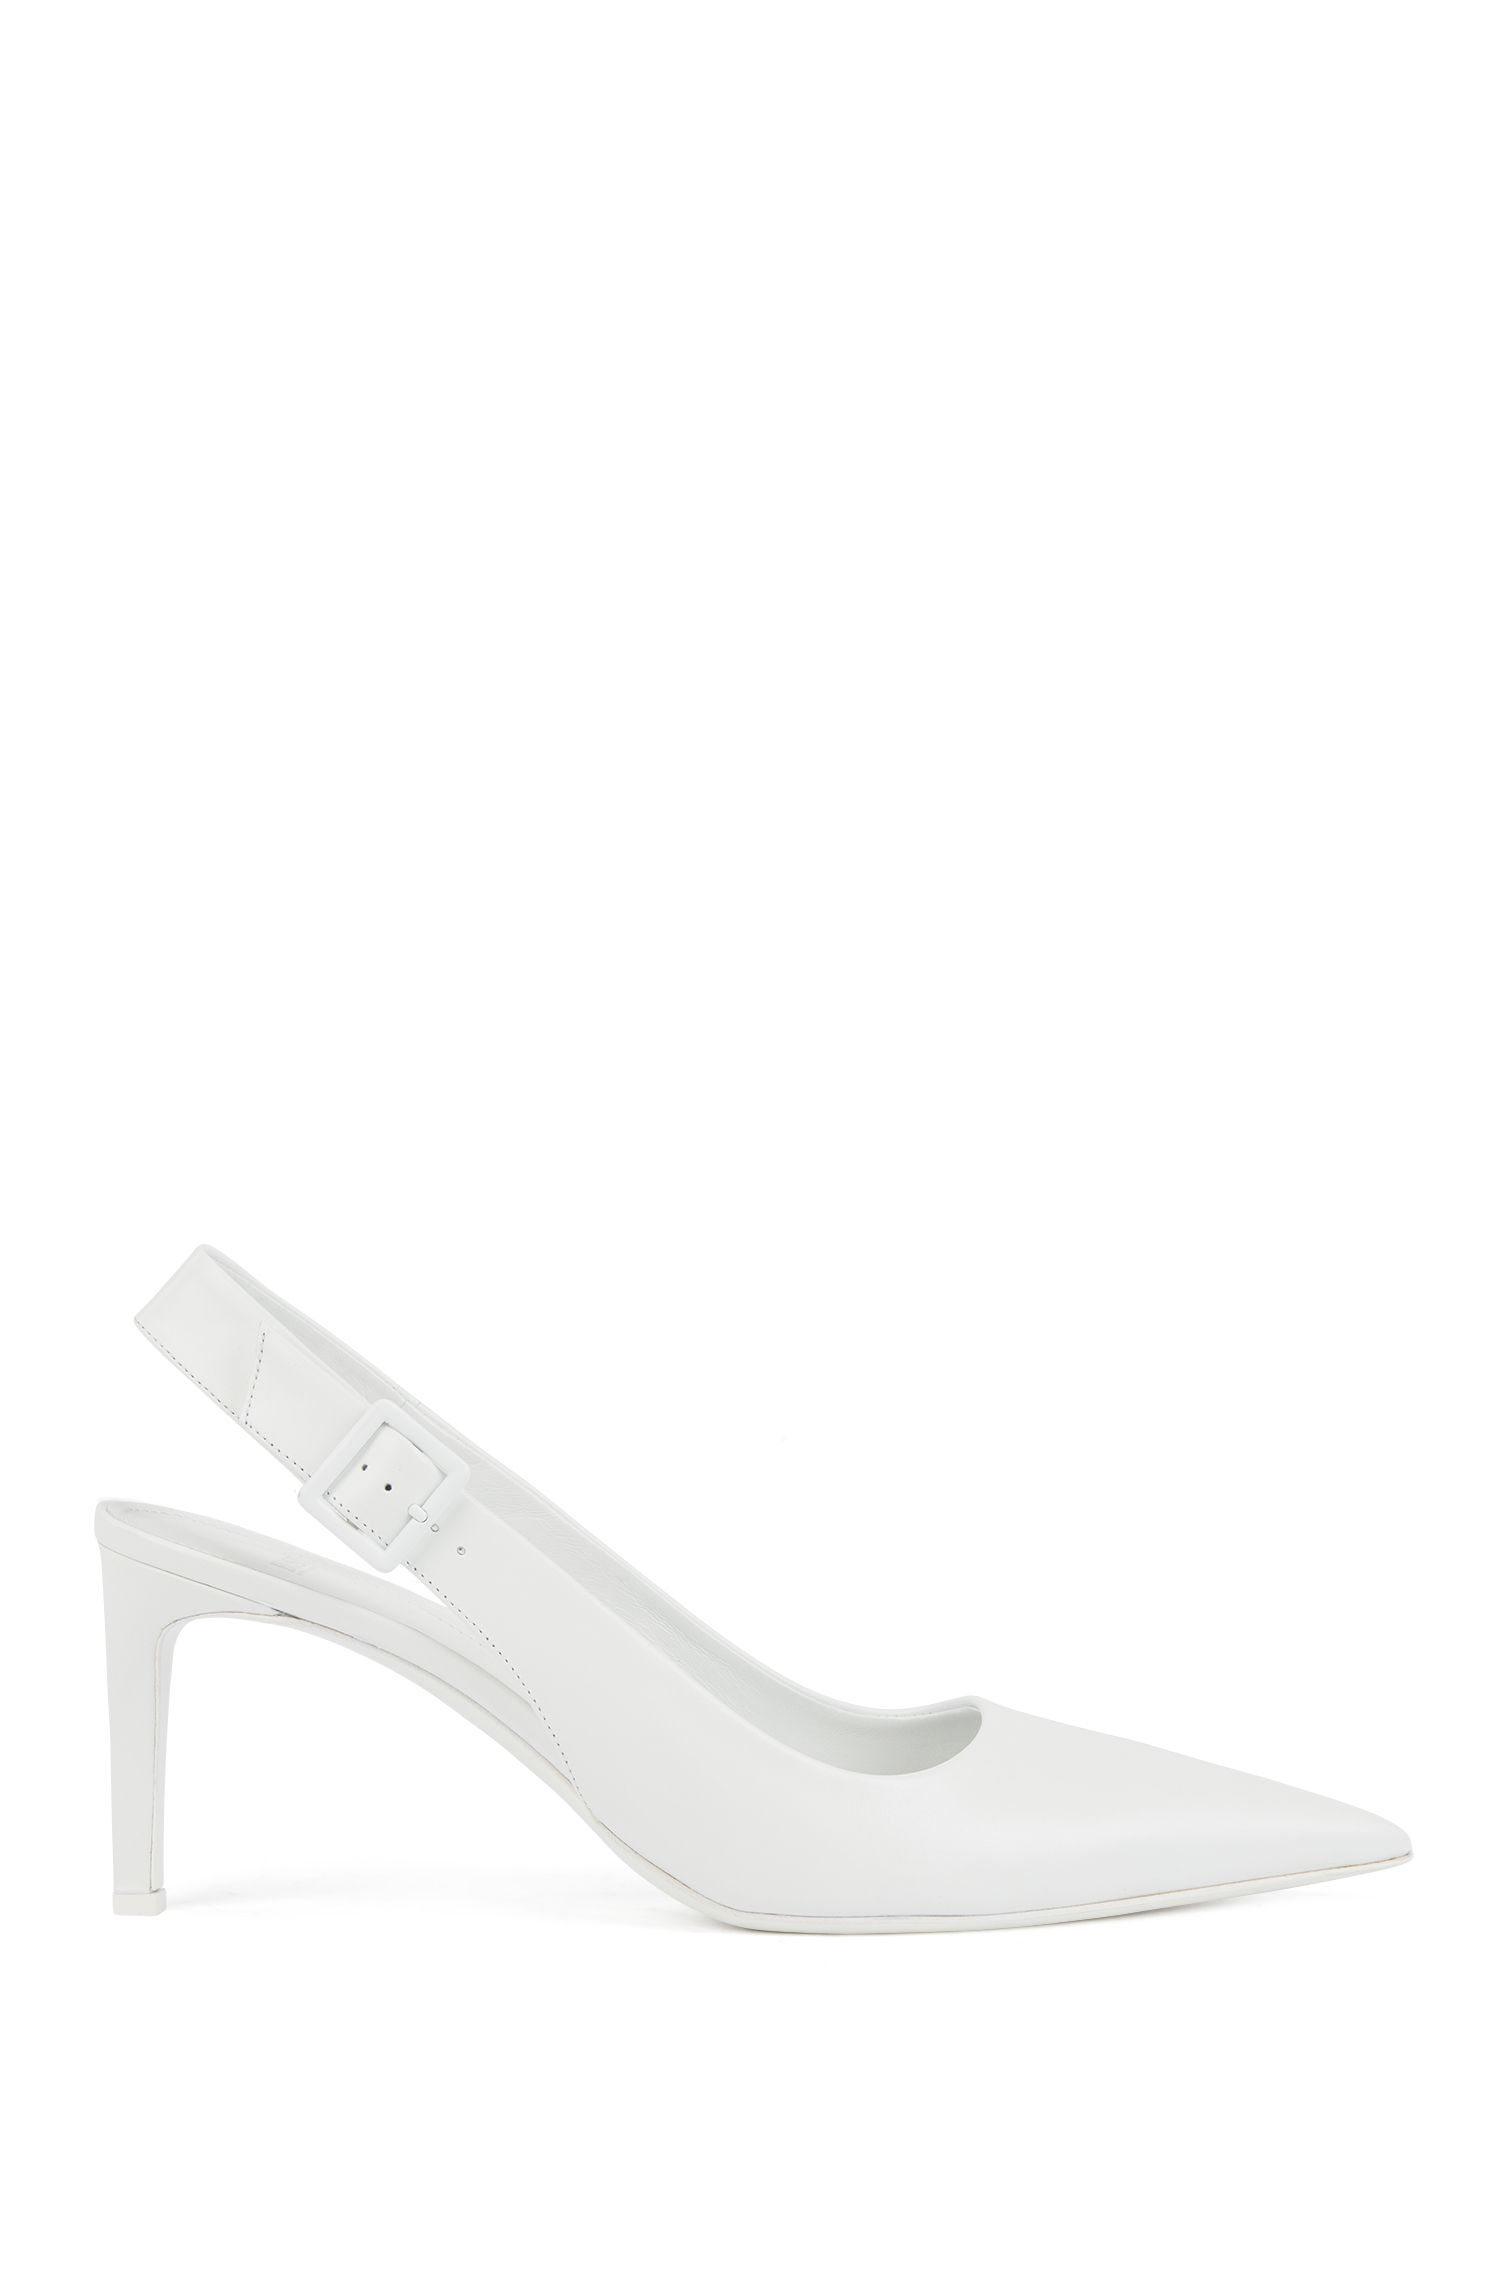 Slingback pumps in calf leather with buckle detail, White